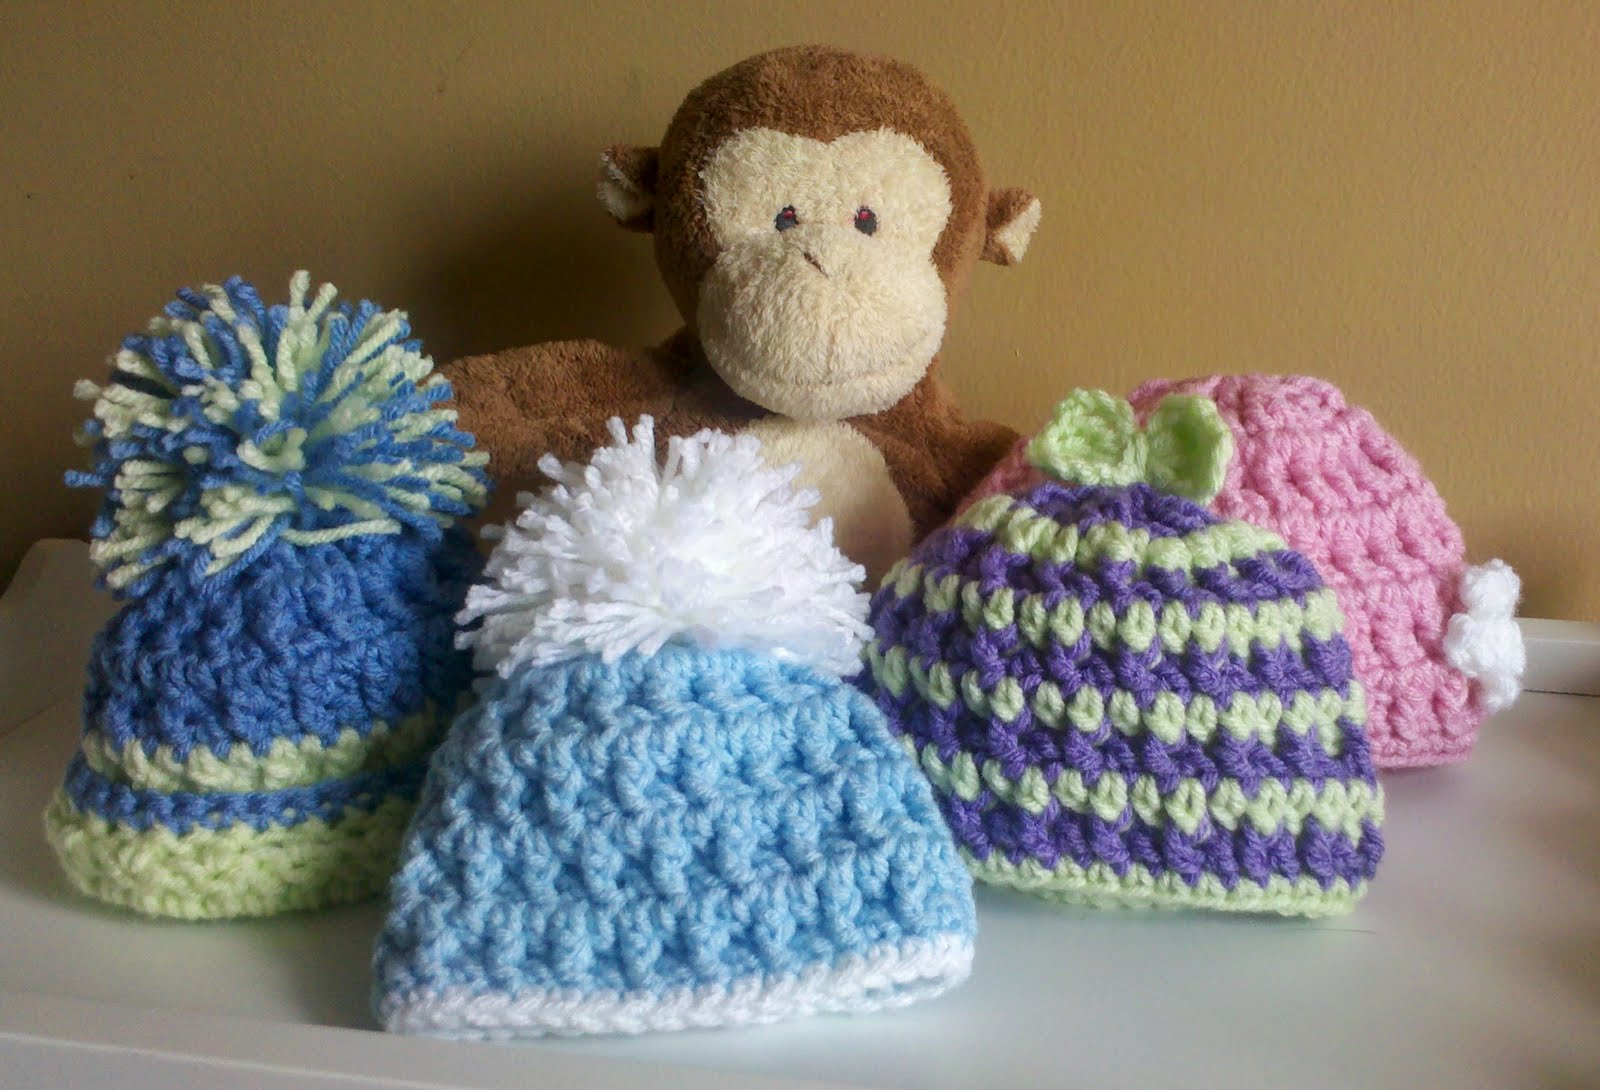 SmoothFox Crochet and Knit: SmoothFox\'s Kool Kids Hats - Free Pattern